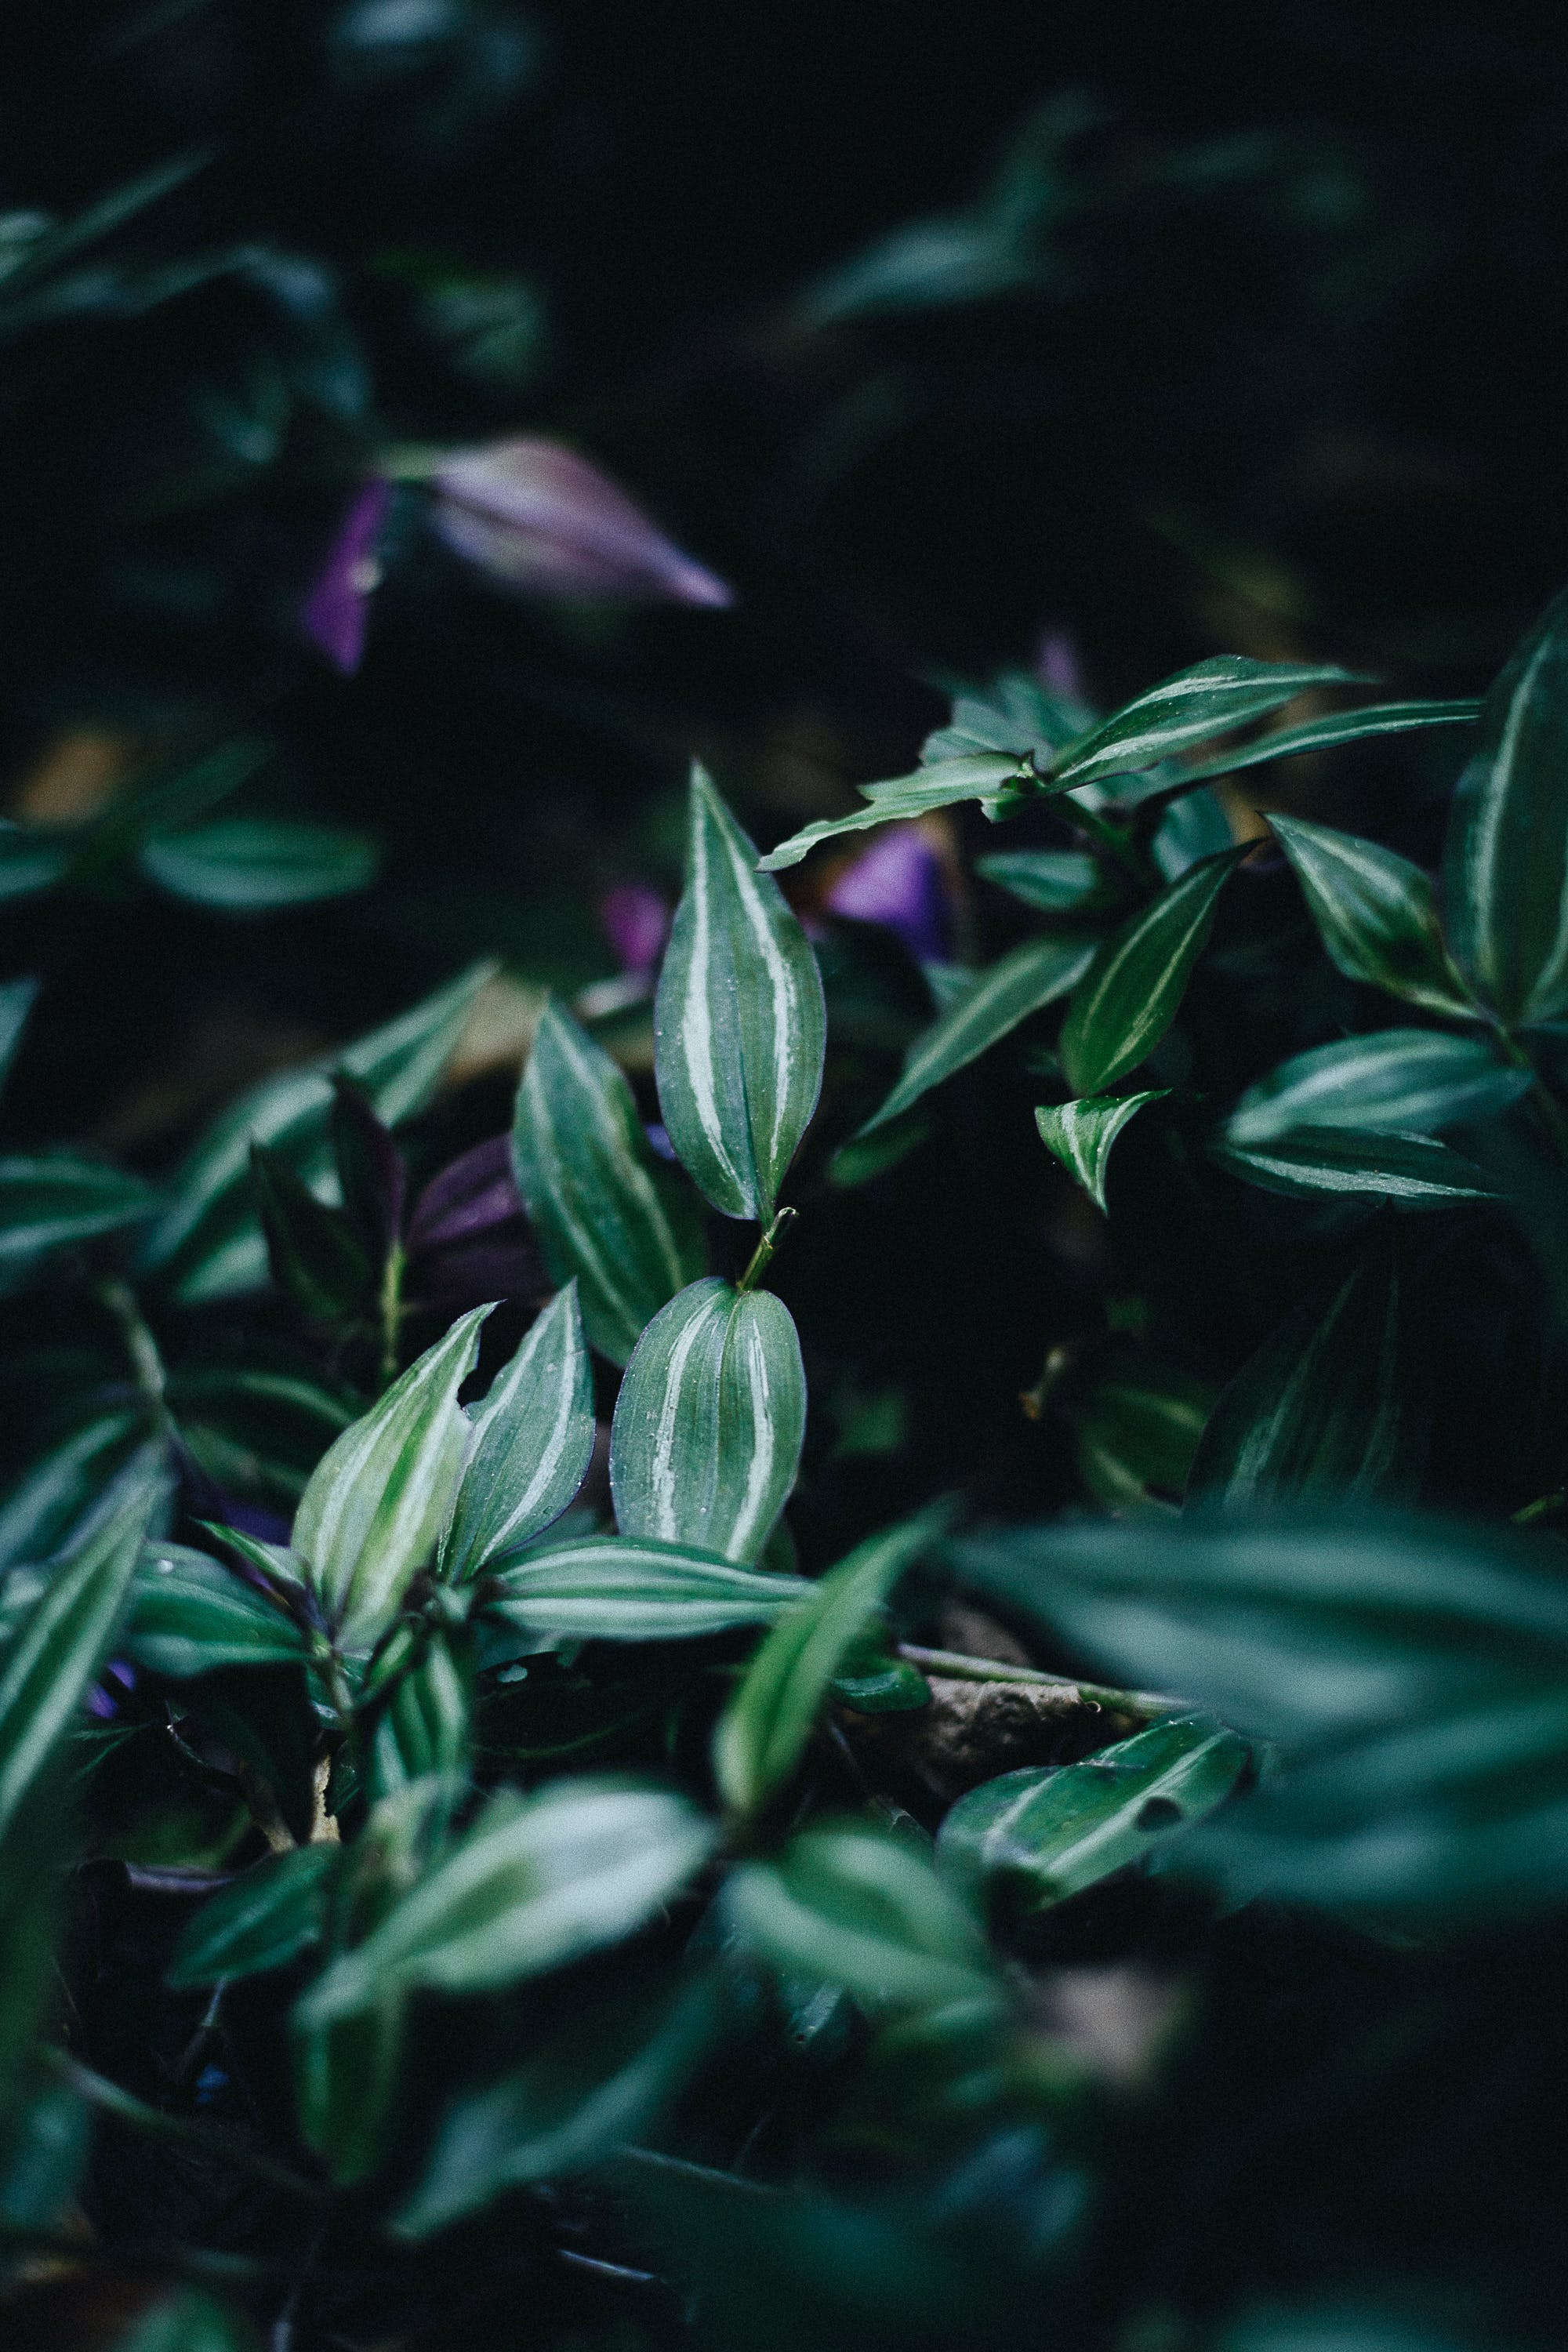 Close-up Photo of Leafy Plant